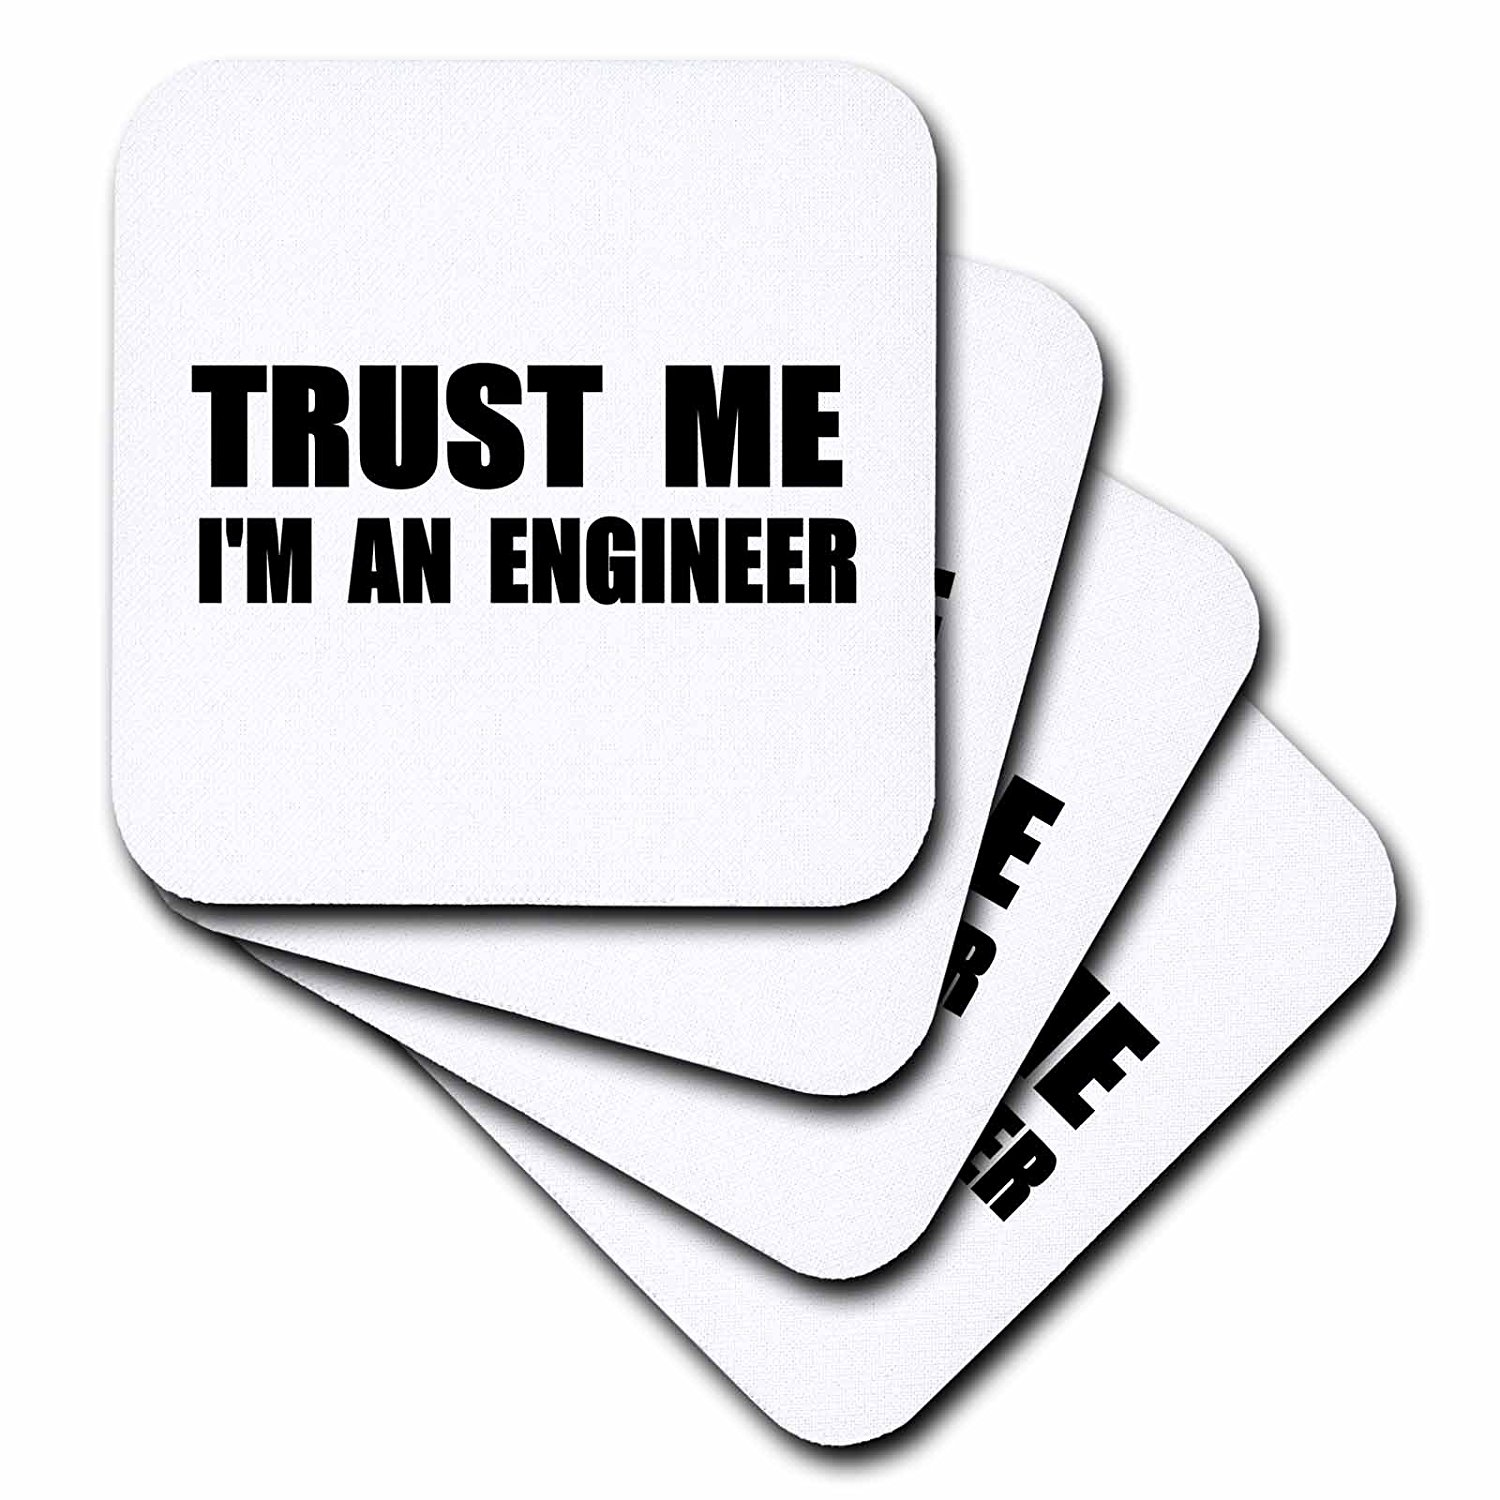 3dRose cst_195603_3 Trust Me I'm an Engineer-Fun Engineering Humor-Funny Job Work Gift-Ceramic Tile Coasters, Set of 4